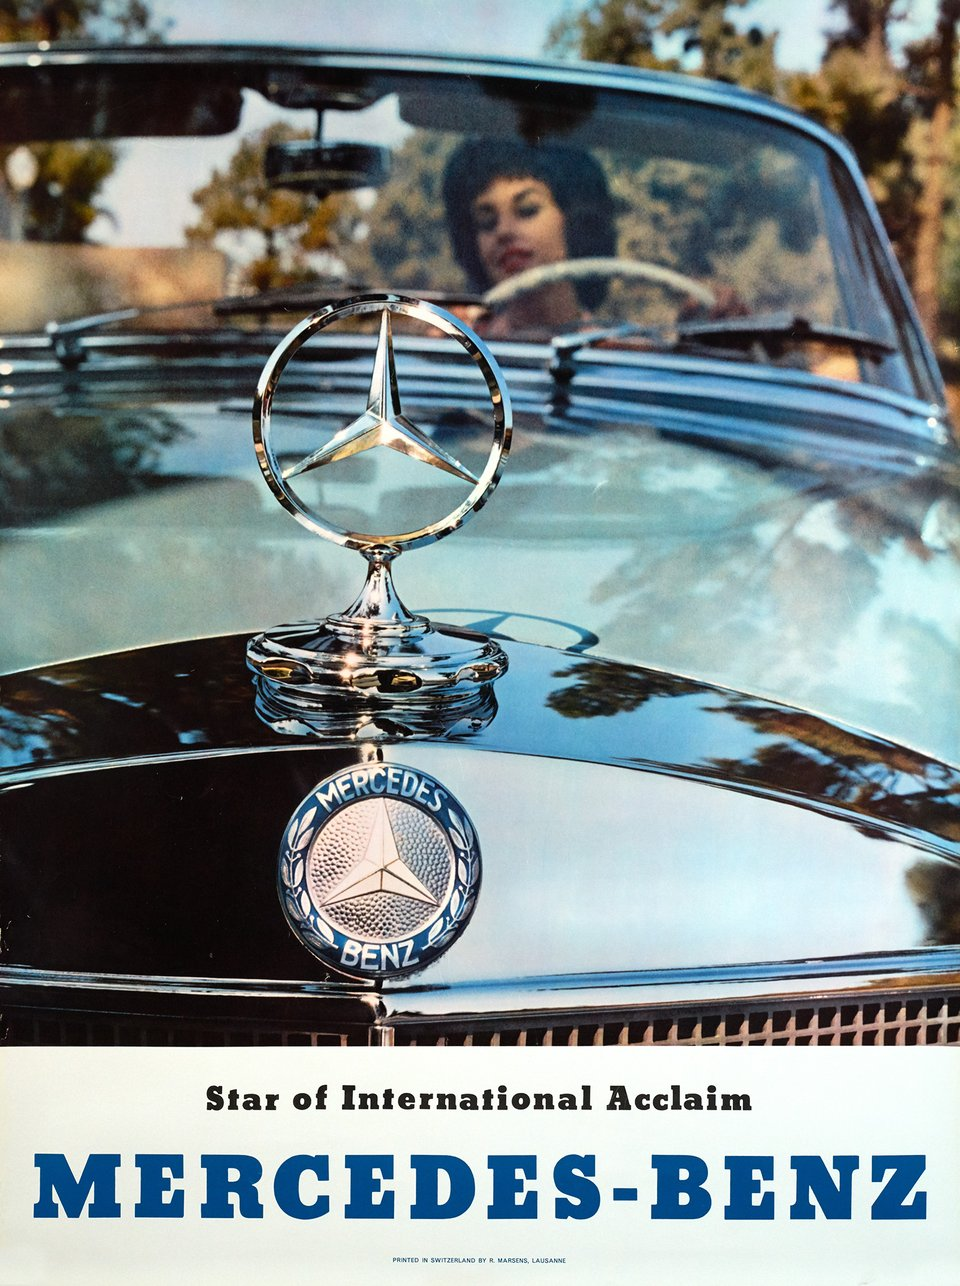 Mercedes-Benz SE Cabriolet, Star of International Acclaim – Affiche ancienne – ANONYME – 1965